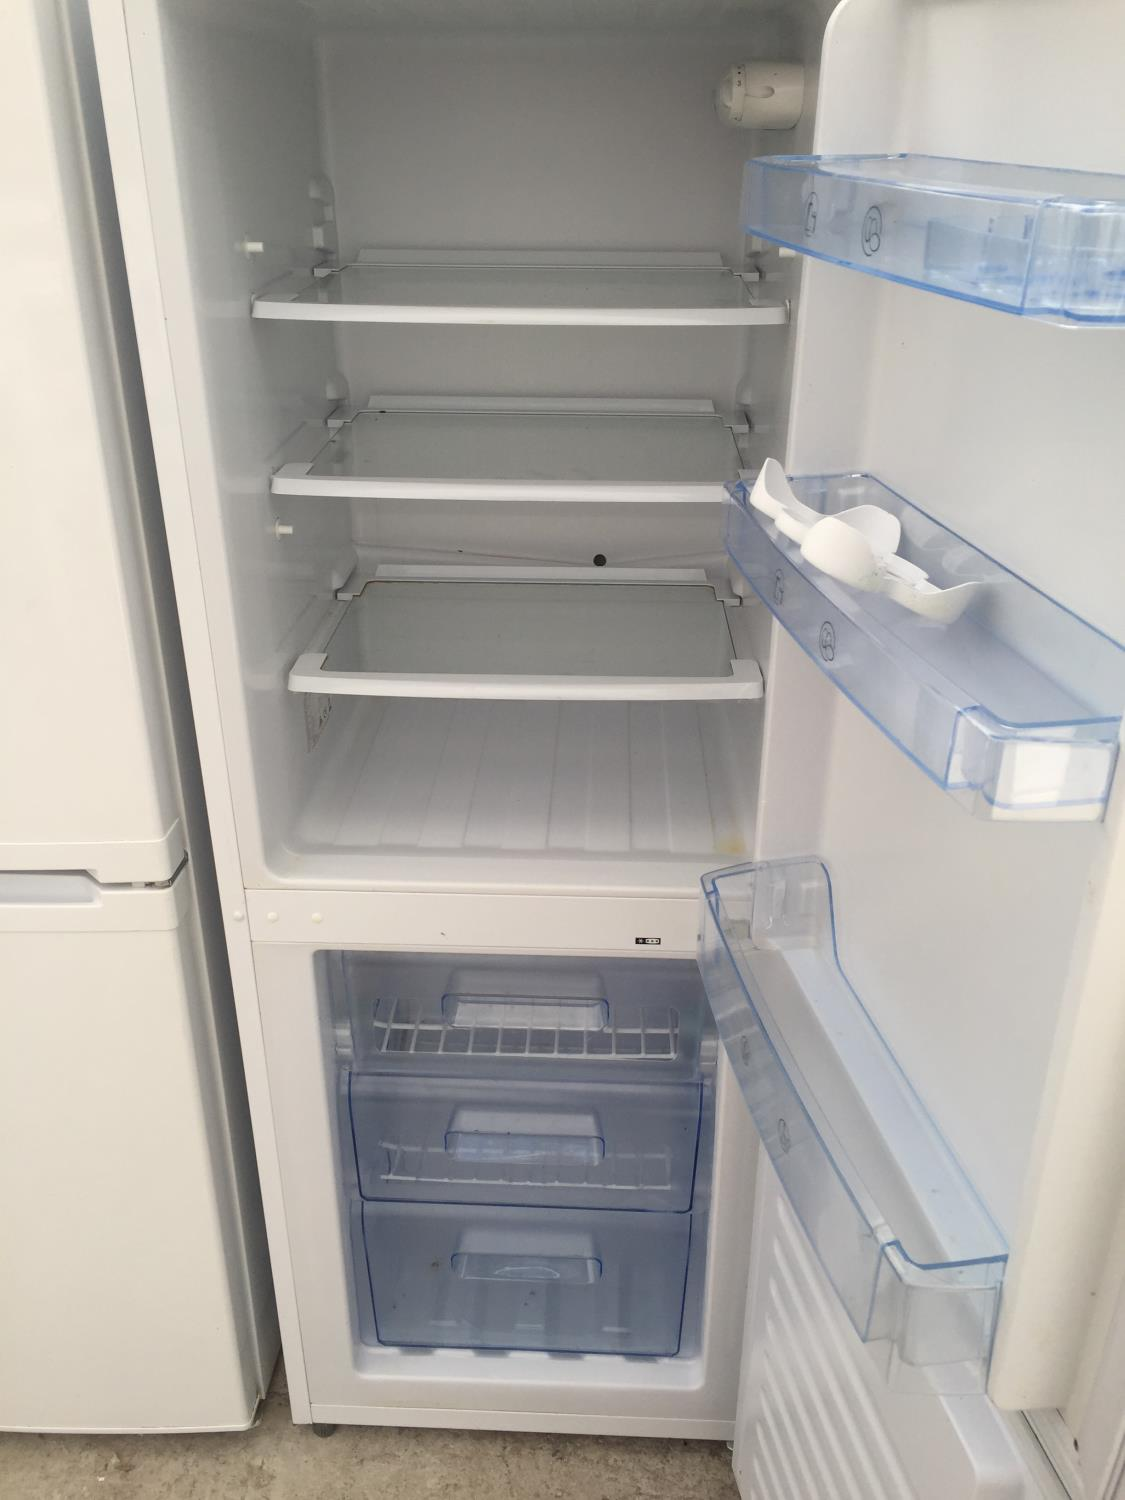 A WHITE NEWWORLD UPRIGHT FRIDGE FREEZER BELIEVED IN WORKING ORDER BUT NO WARRANTY - Image 4 of 4